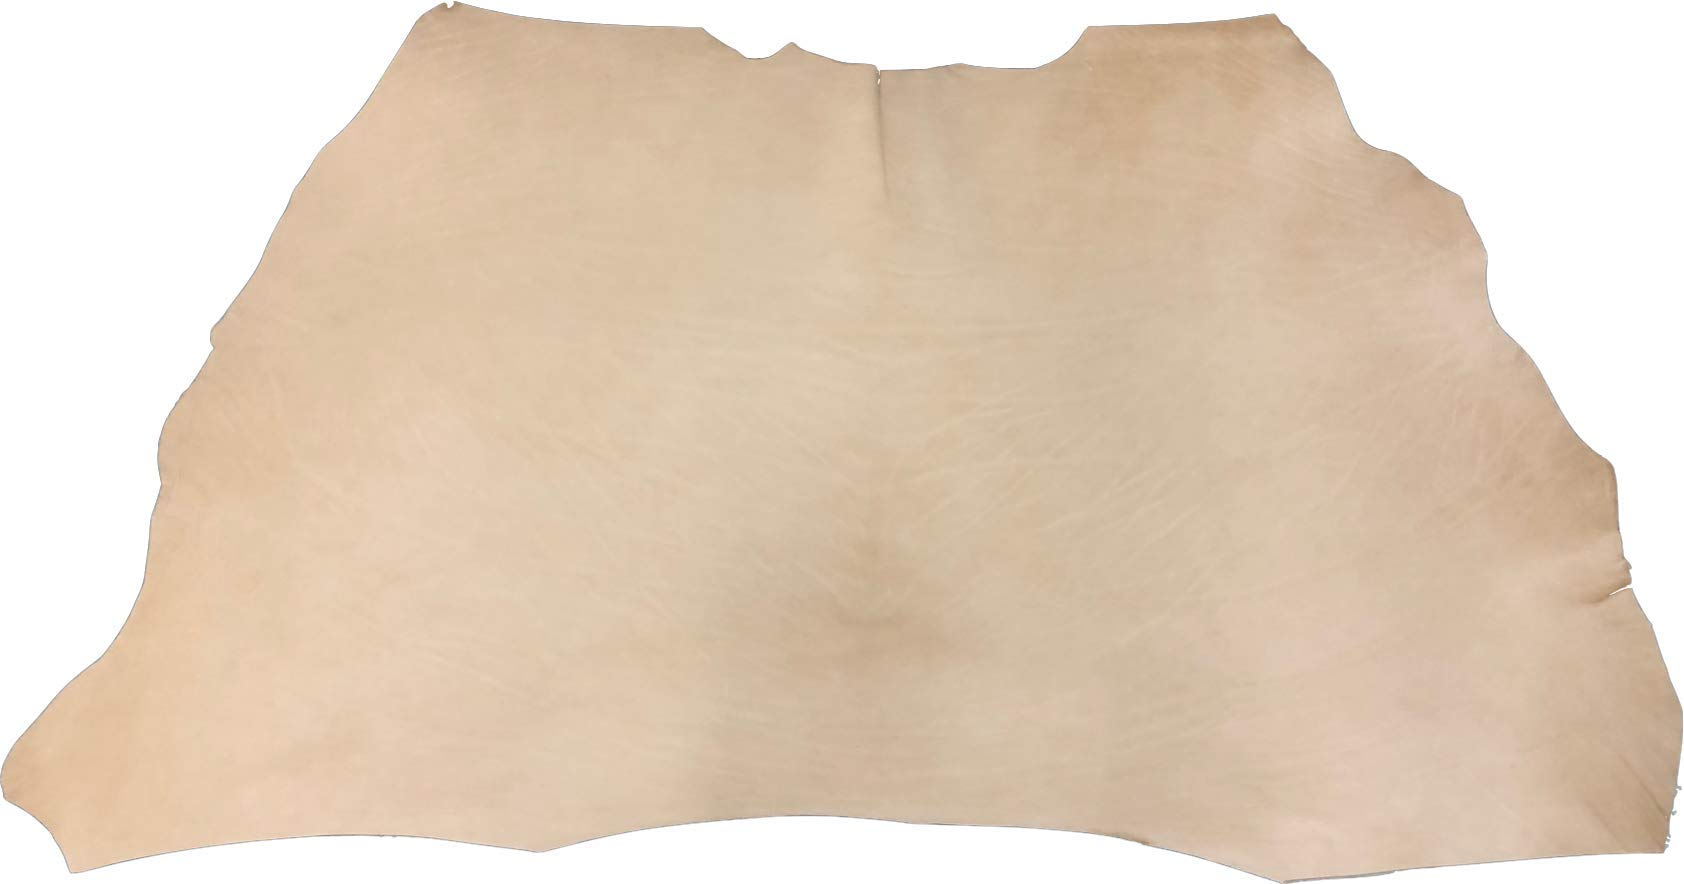 Vegetable Tanned Leather tooling Double Shoulders by LEATHER ALTERNATIVE- Ideal to make holsters coasters riffle slings strips dog collars - (Grade AB) - 8/10oz - 12 to 14sq/ft